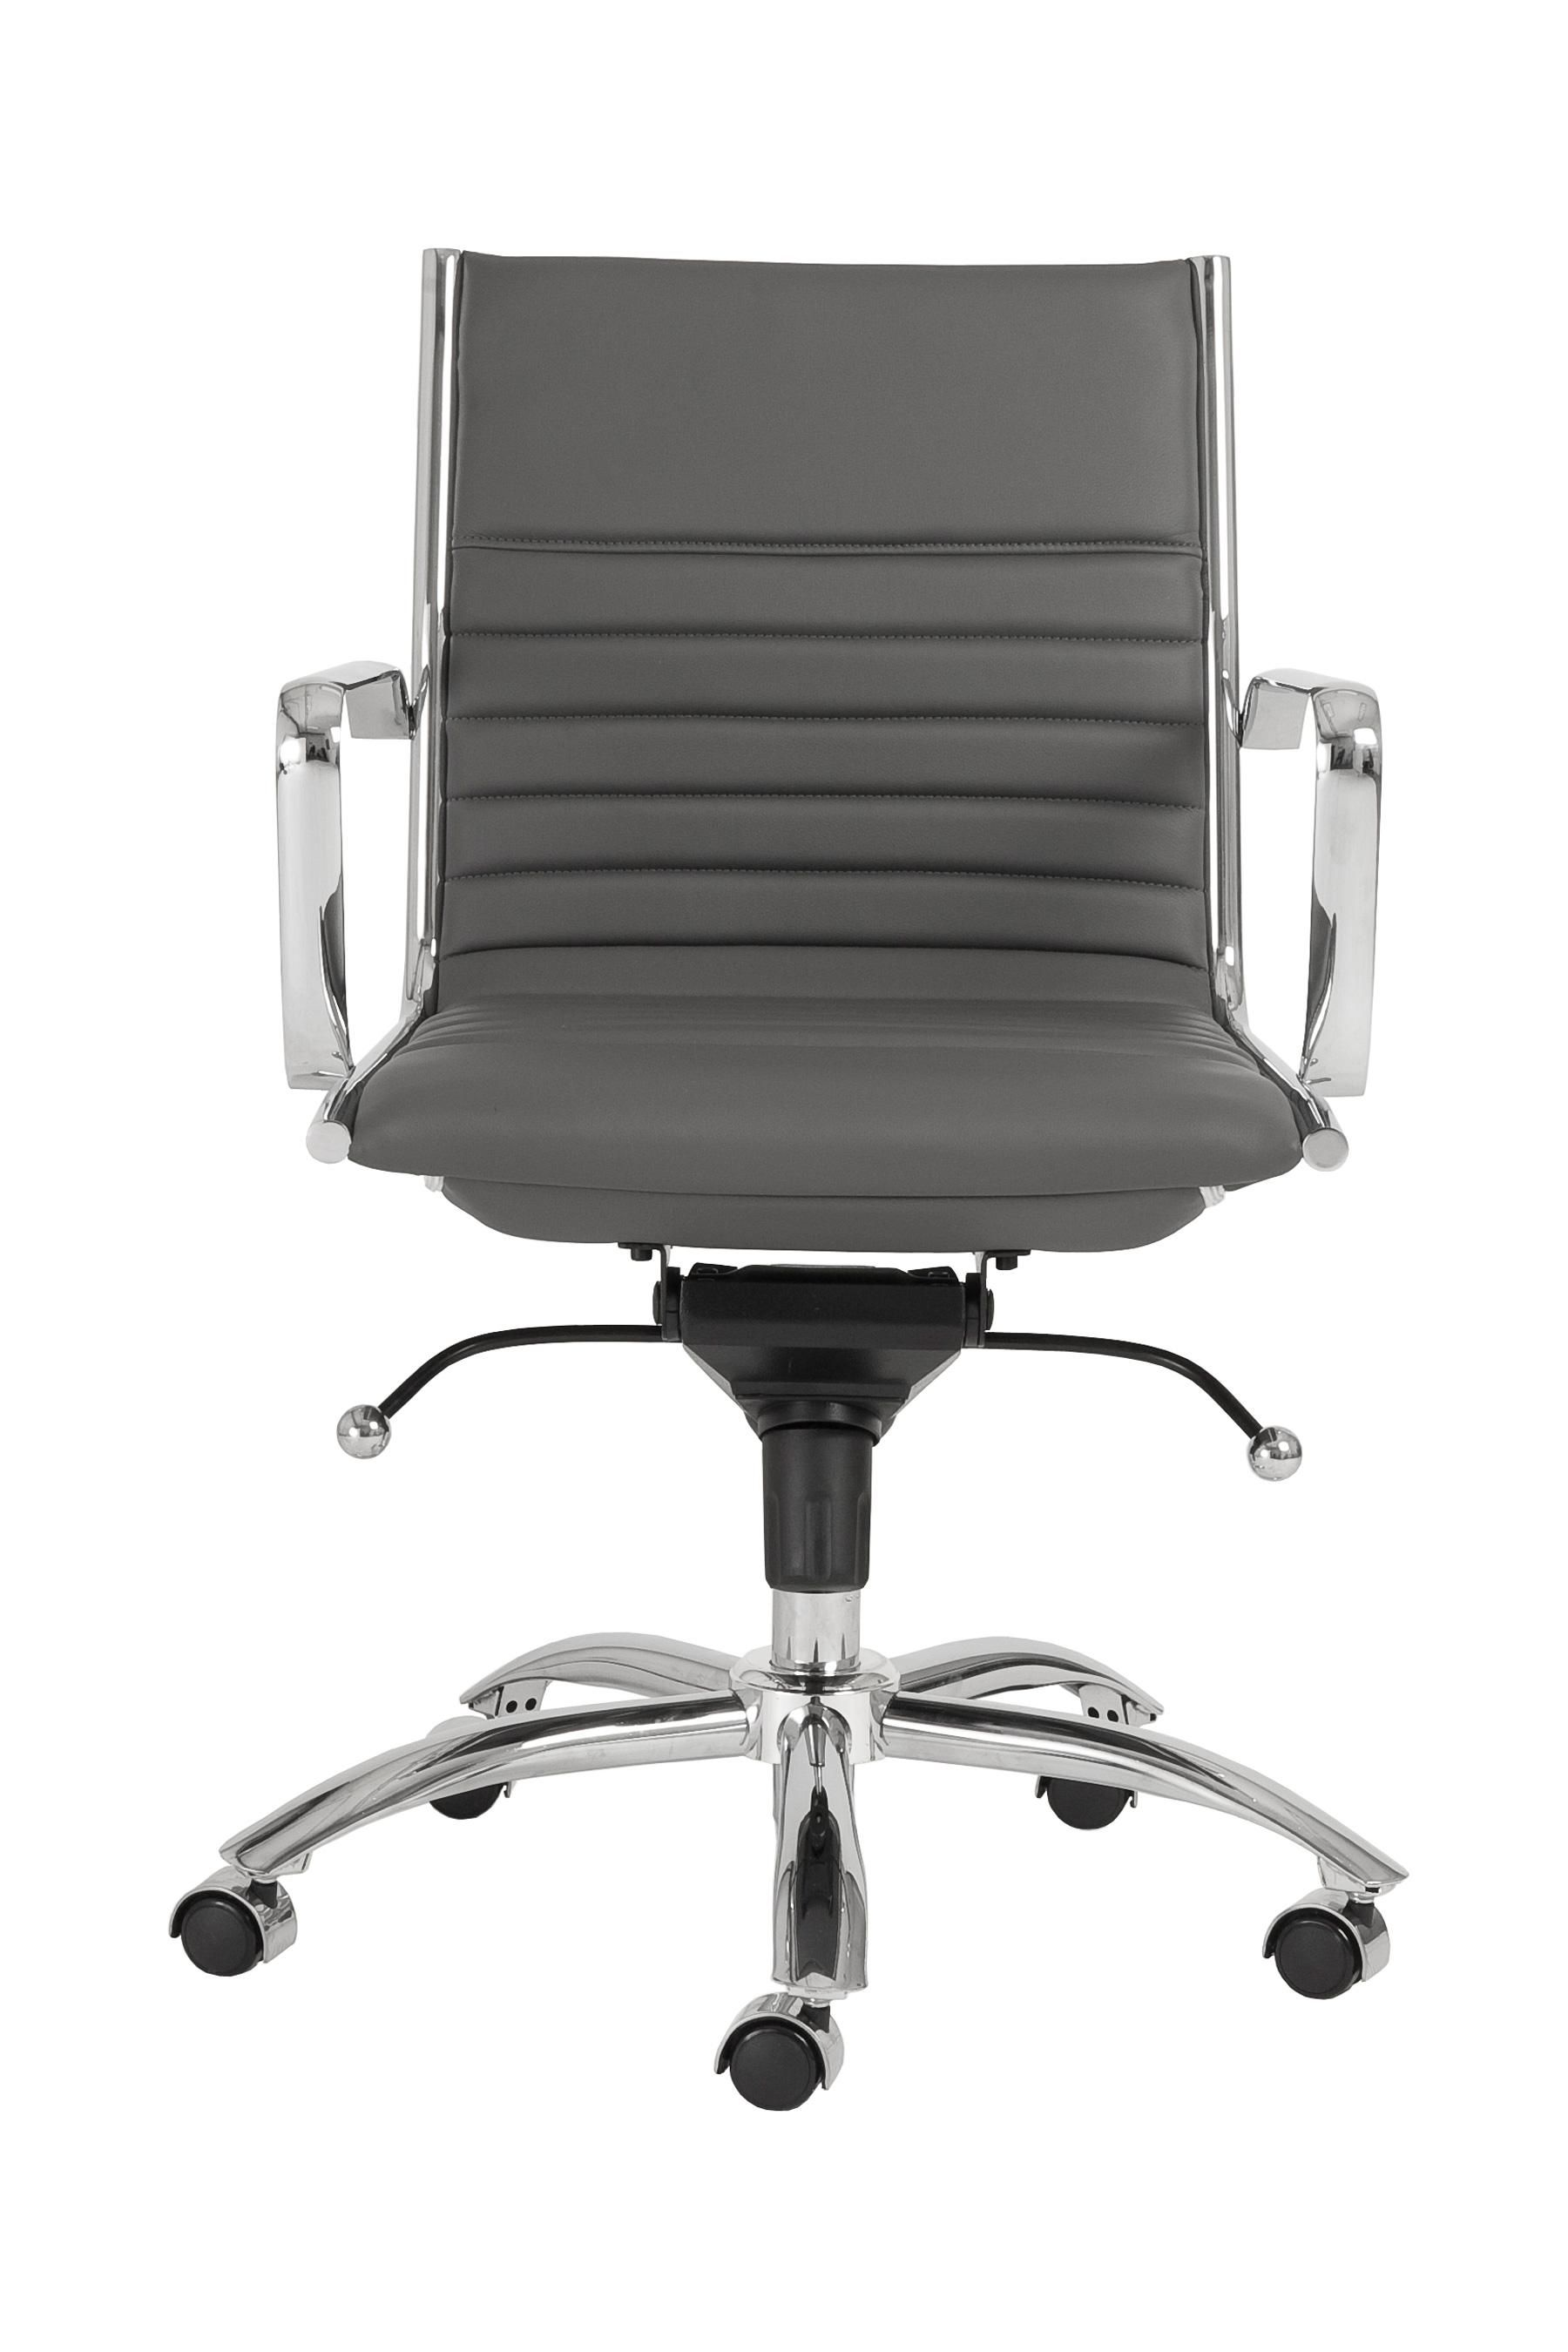 Dirk Dirk Low Back Office Chair By Euro Style High Back Office